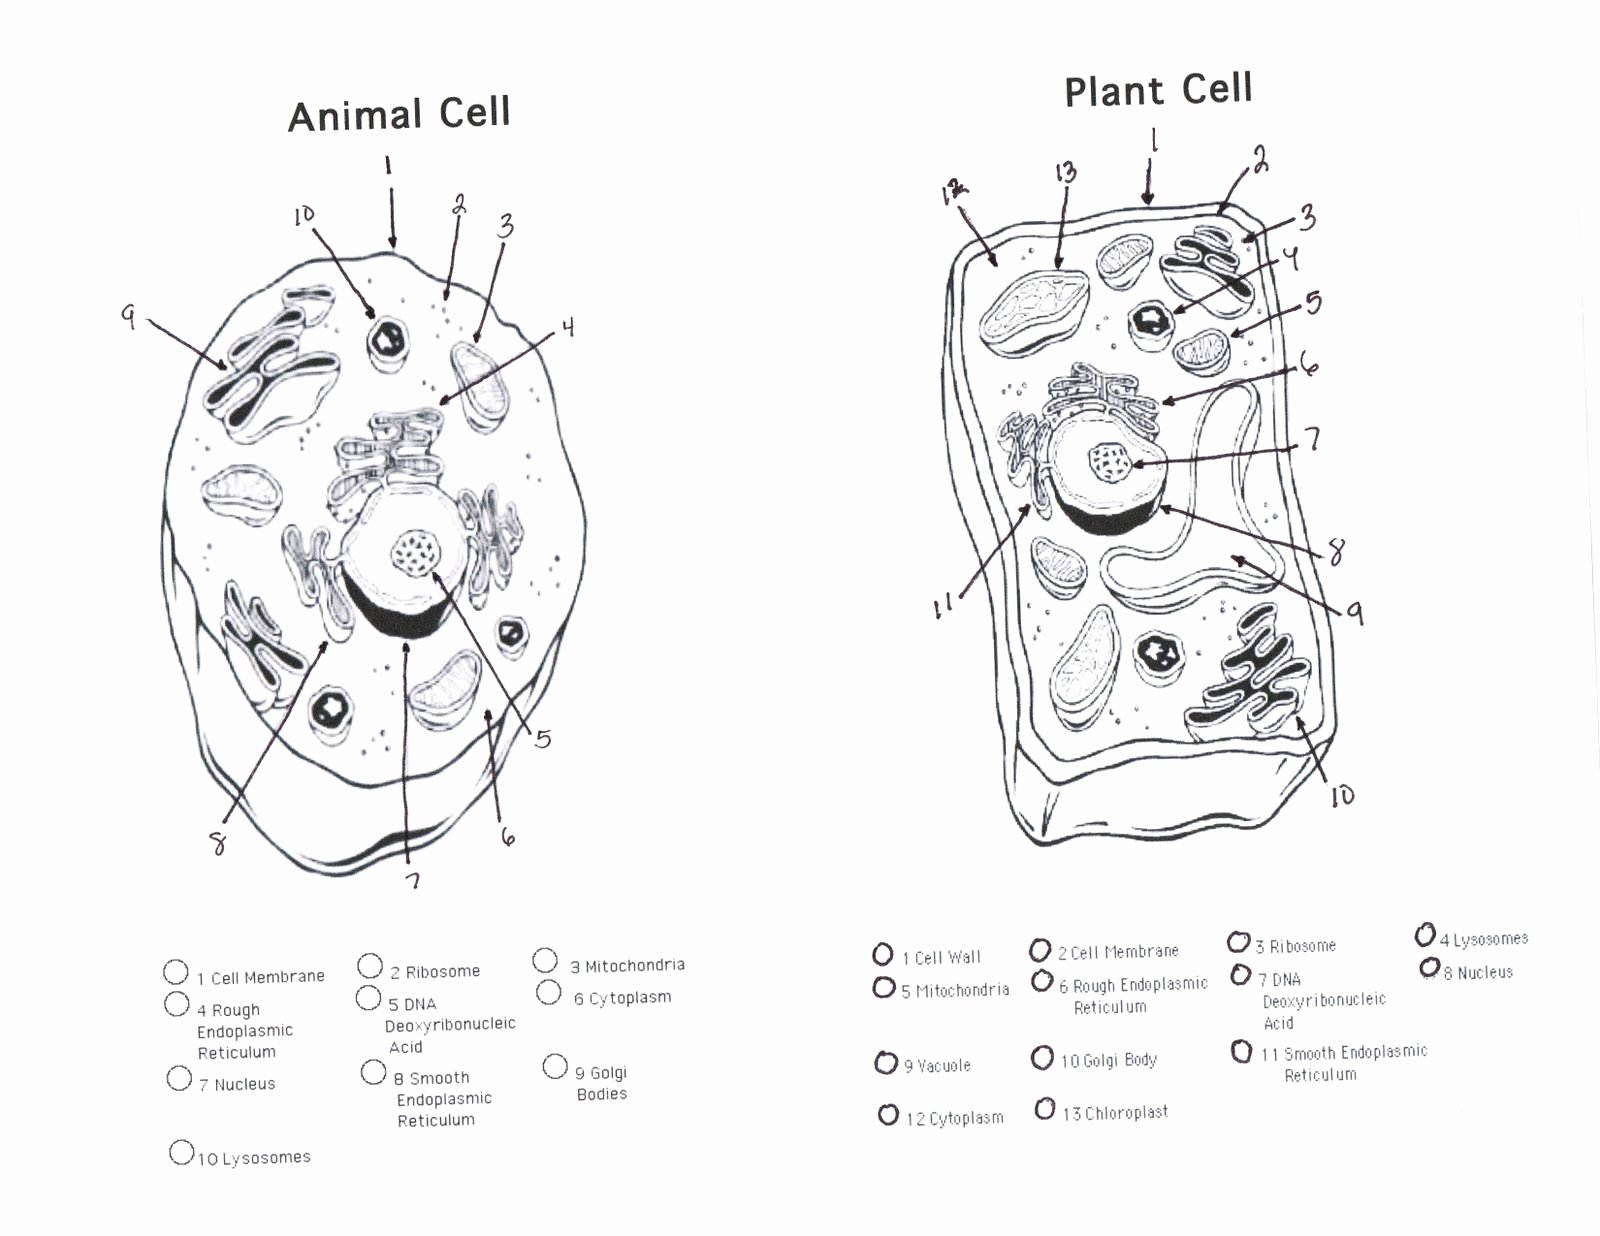 Animal and Plant Cells Worksheet Lovely Plant Cell Diagram Worksheet Diagram Gallery Wiring